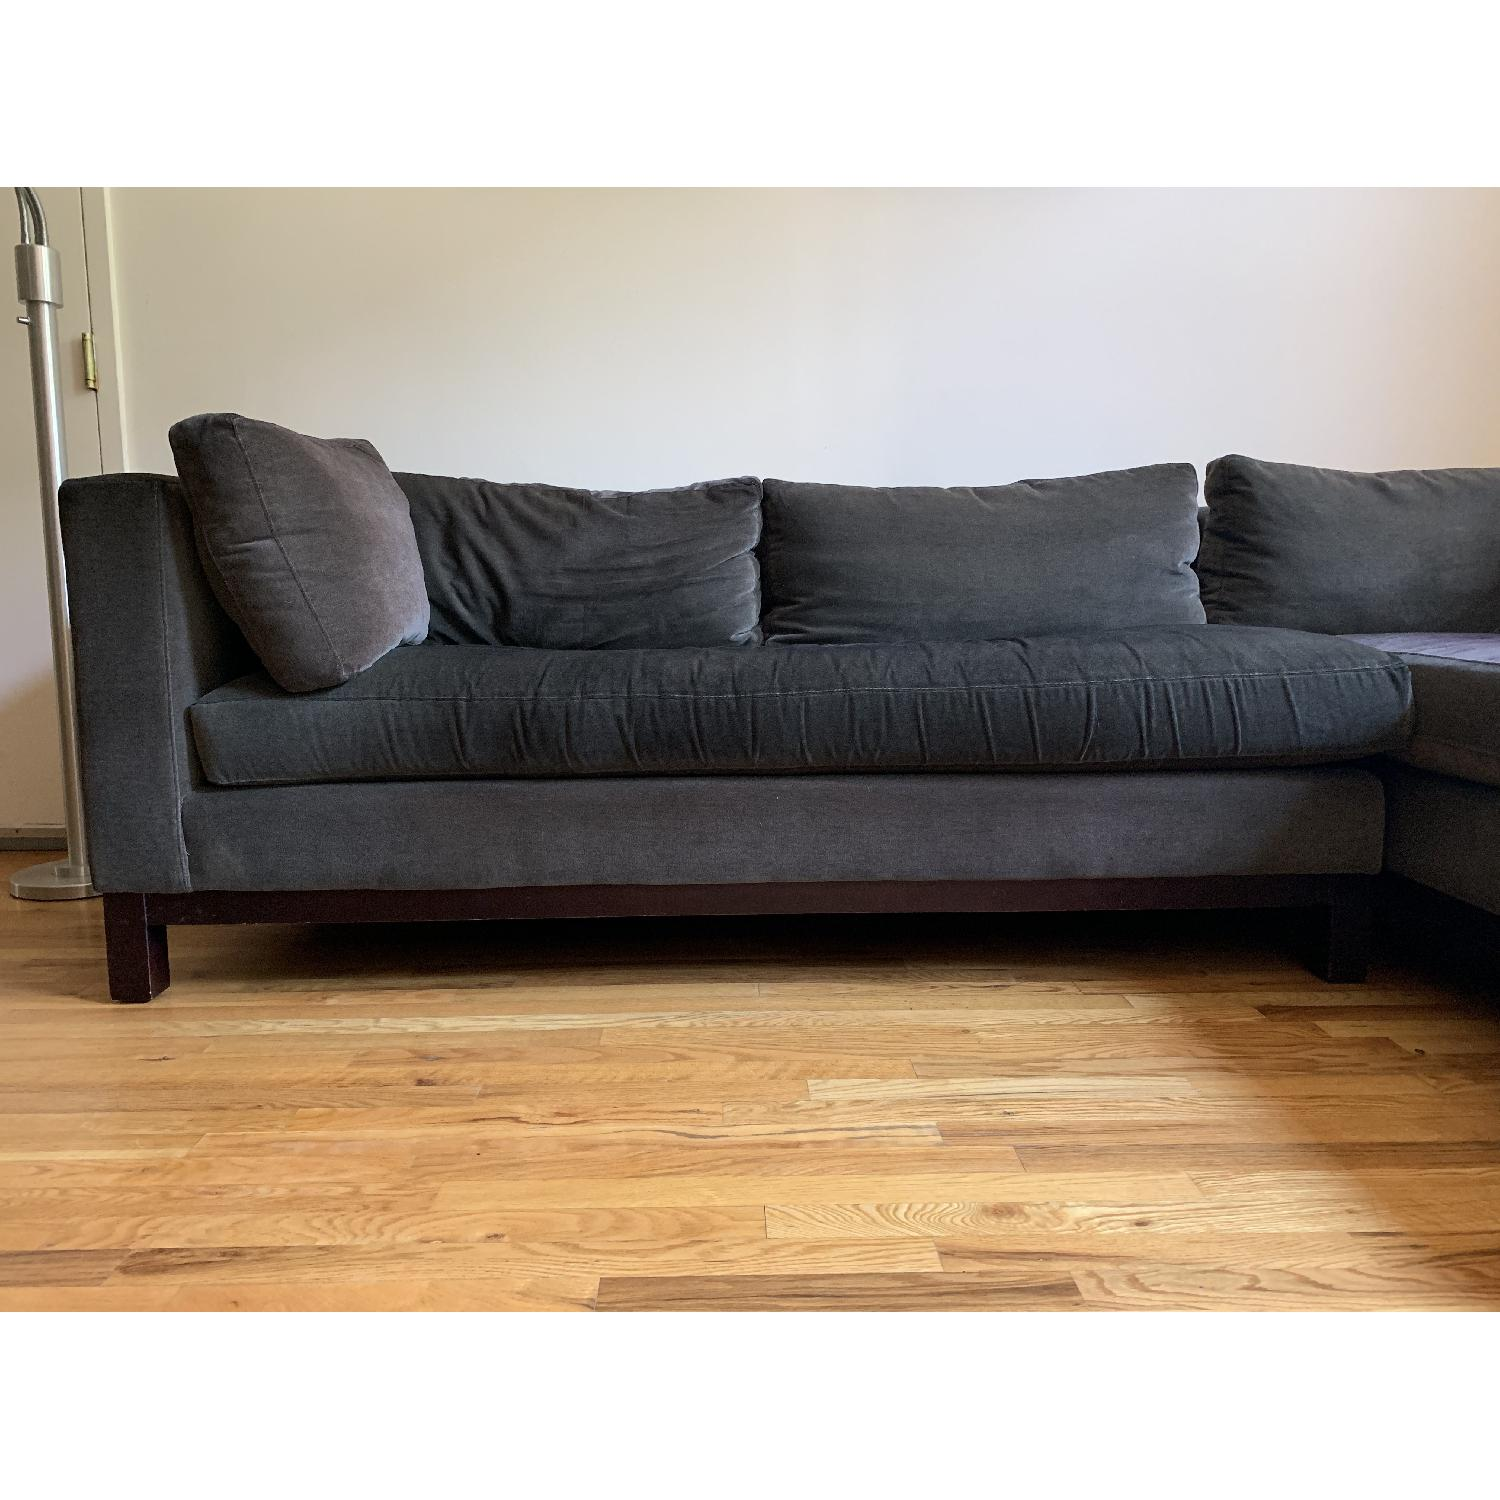 Outstanding Crate Barrel Delaney 2 Piece Sectional Sofa Aptdeco Gamerscity Chair Design For Home Gamerscityorg